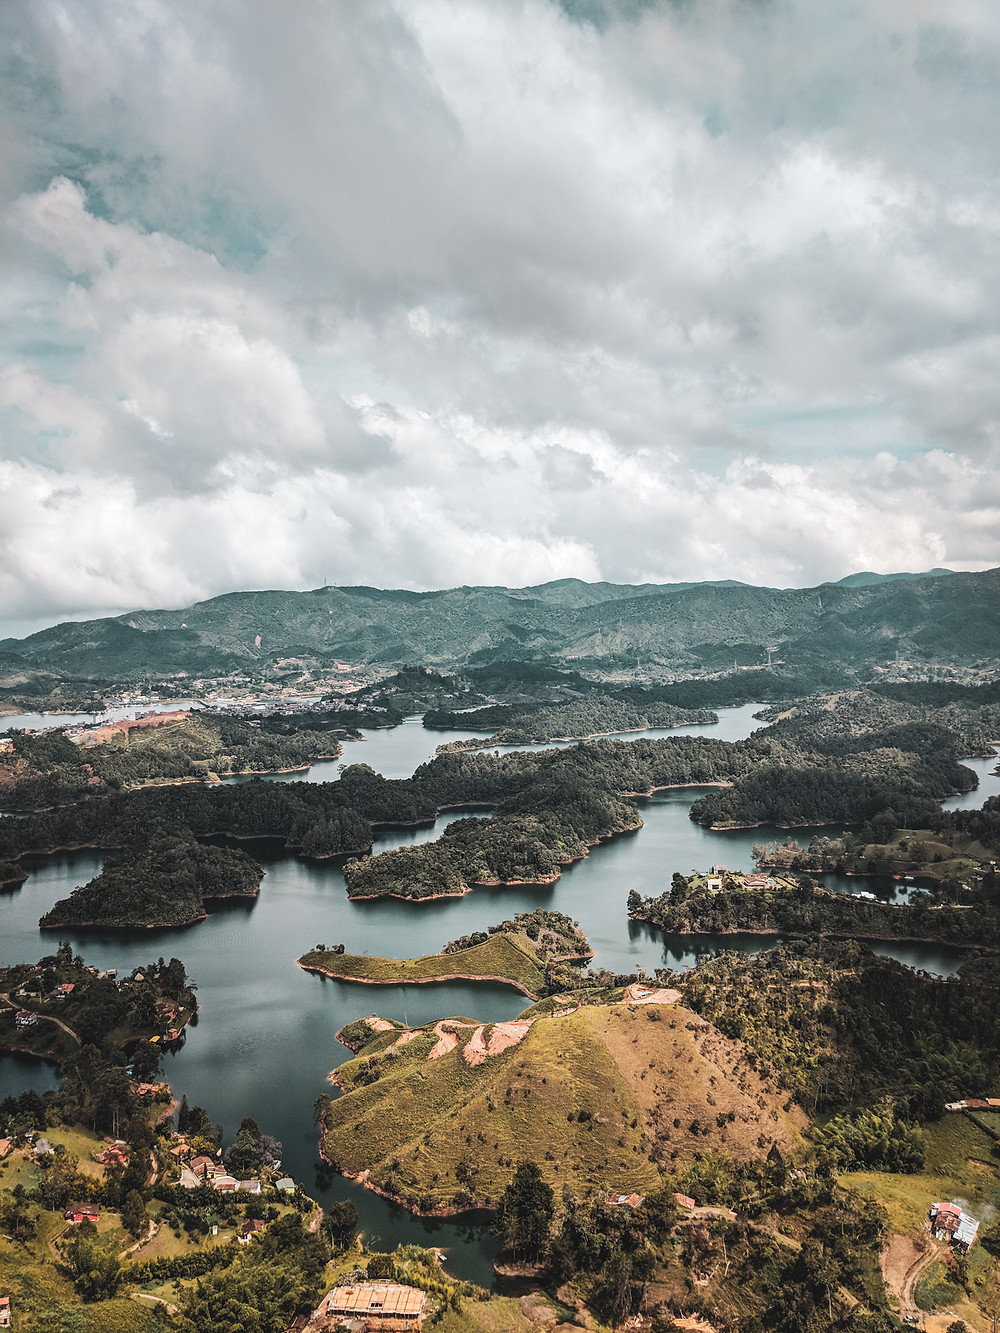 View from the top of El Peñón near Guatapé, Colombia.